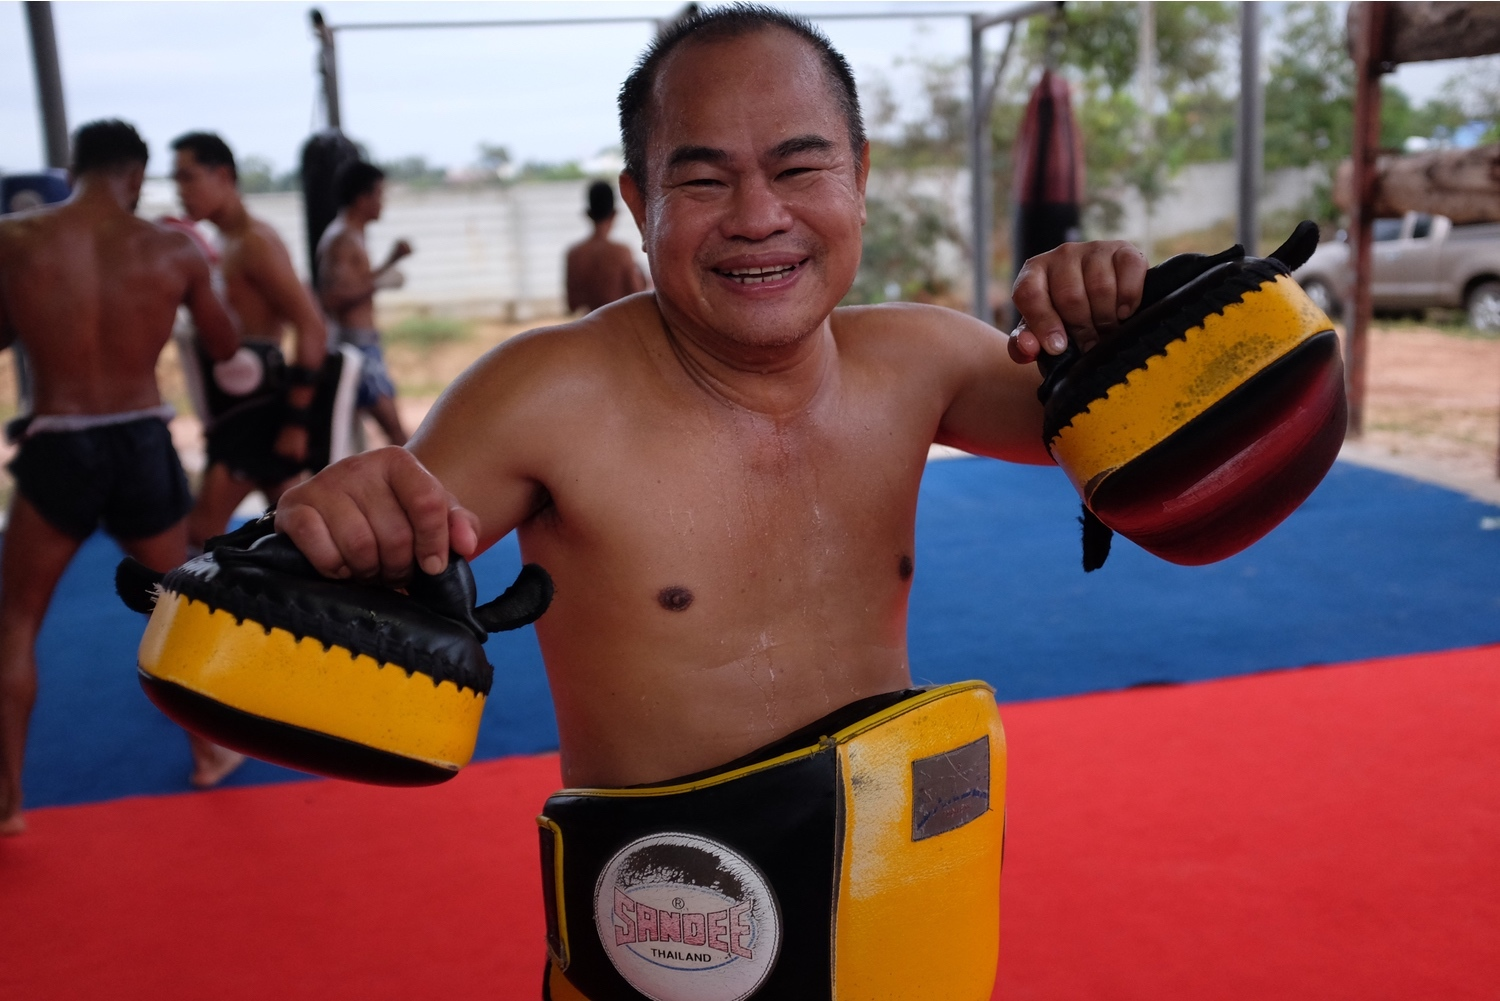 community news, A Farang at Lamnamoon Muay Thai